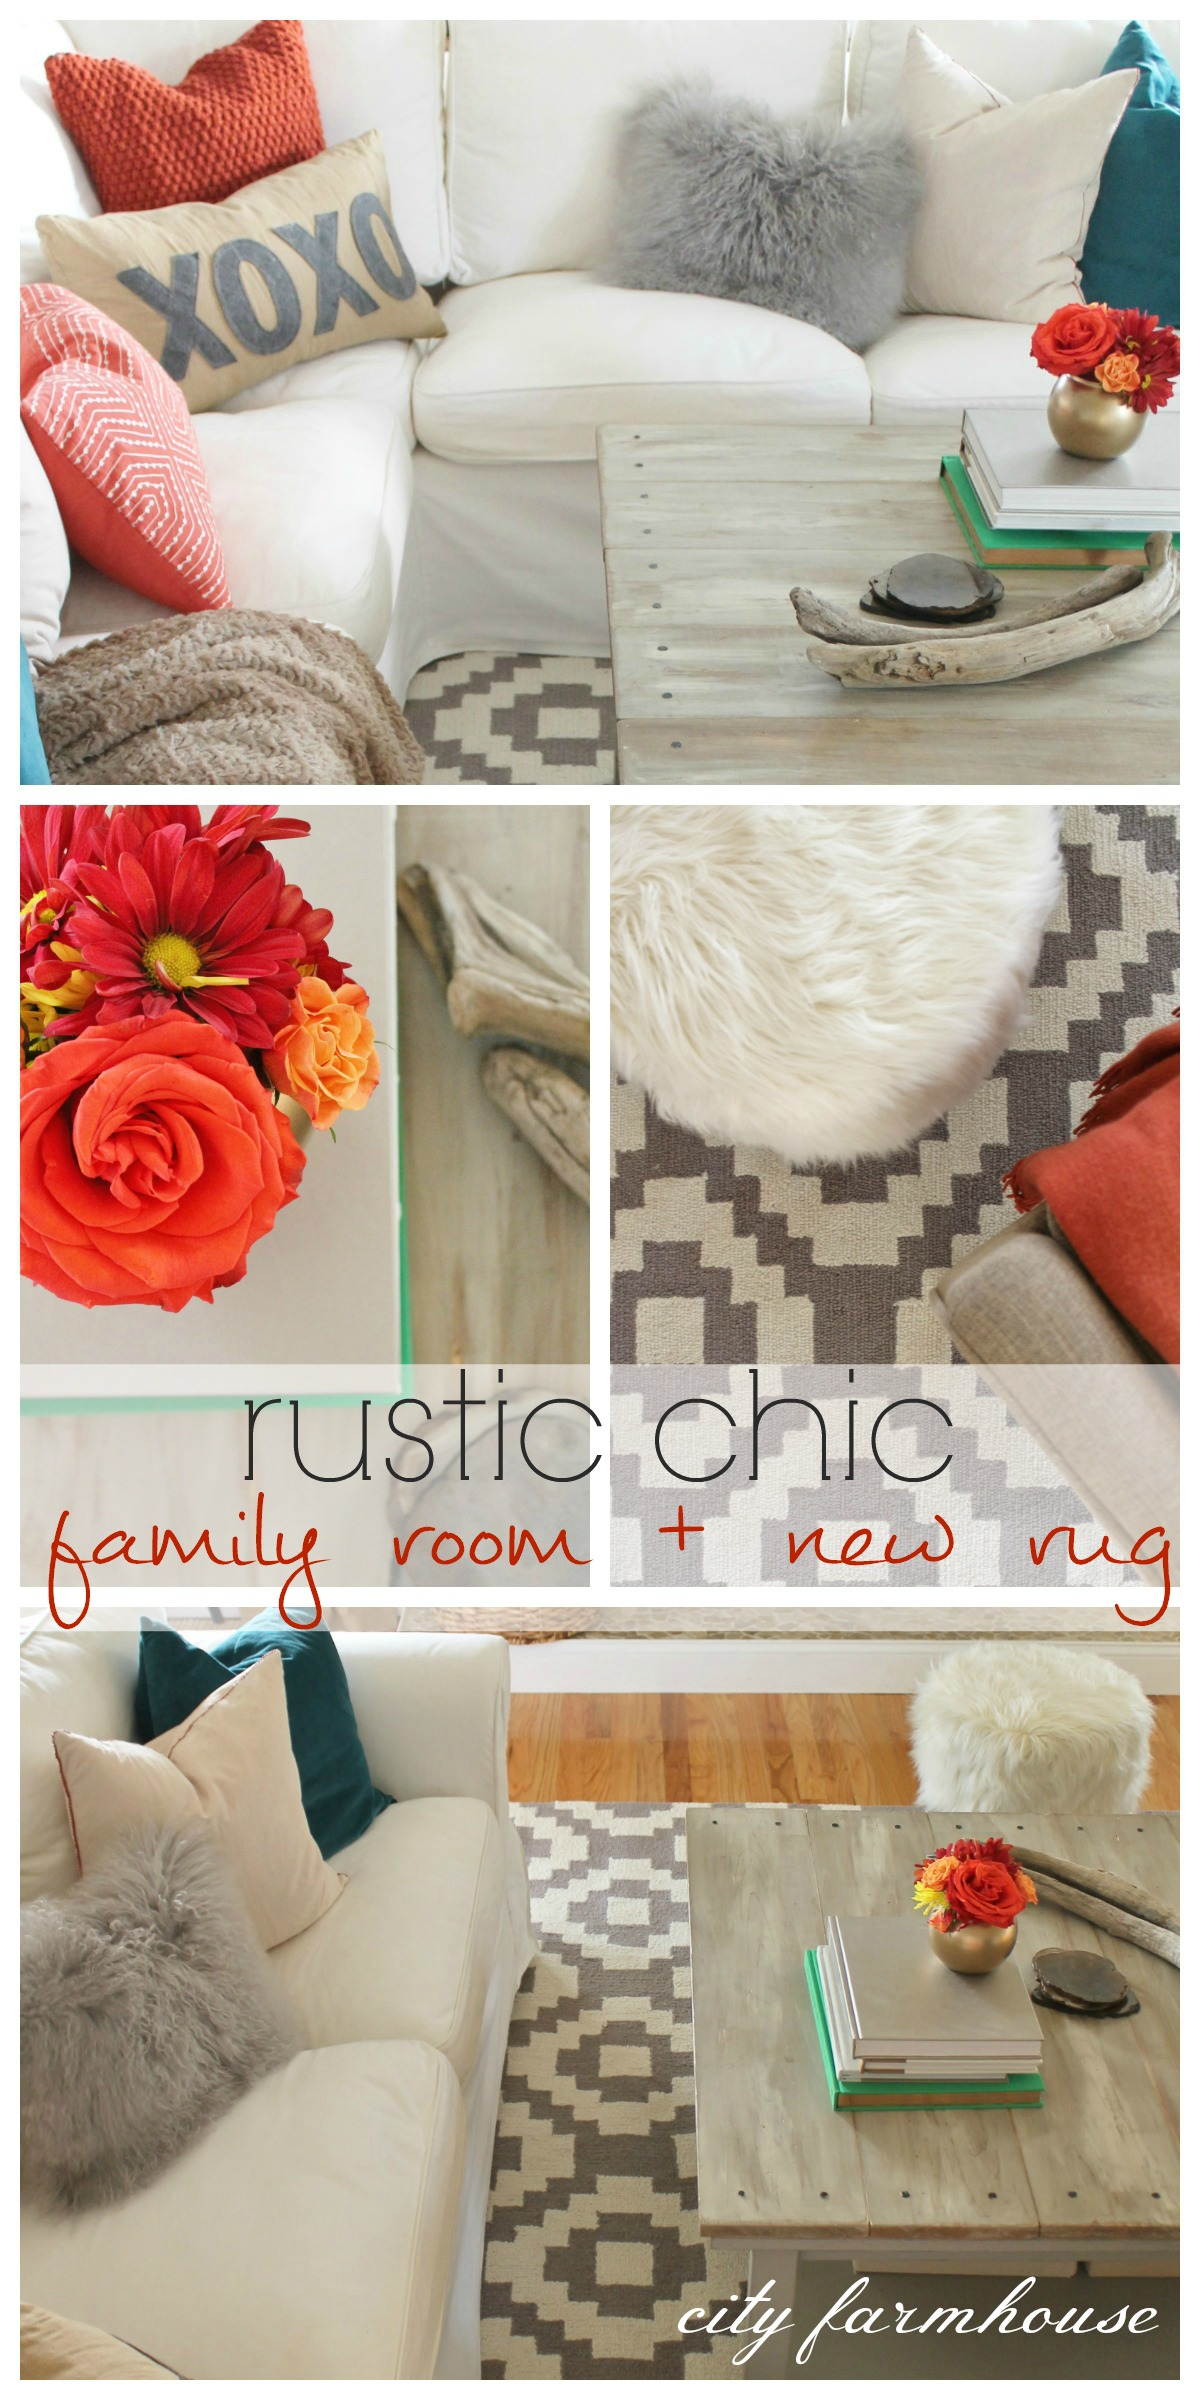 farmhouse room decor 27 rustic farmhouse living room decor ideas for your home homelovr ... Farmhouse Living Room Decor Ideas Bright Decorcouk Rustic Country.  Rustic Chic Family Room New Rug